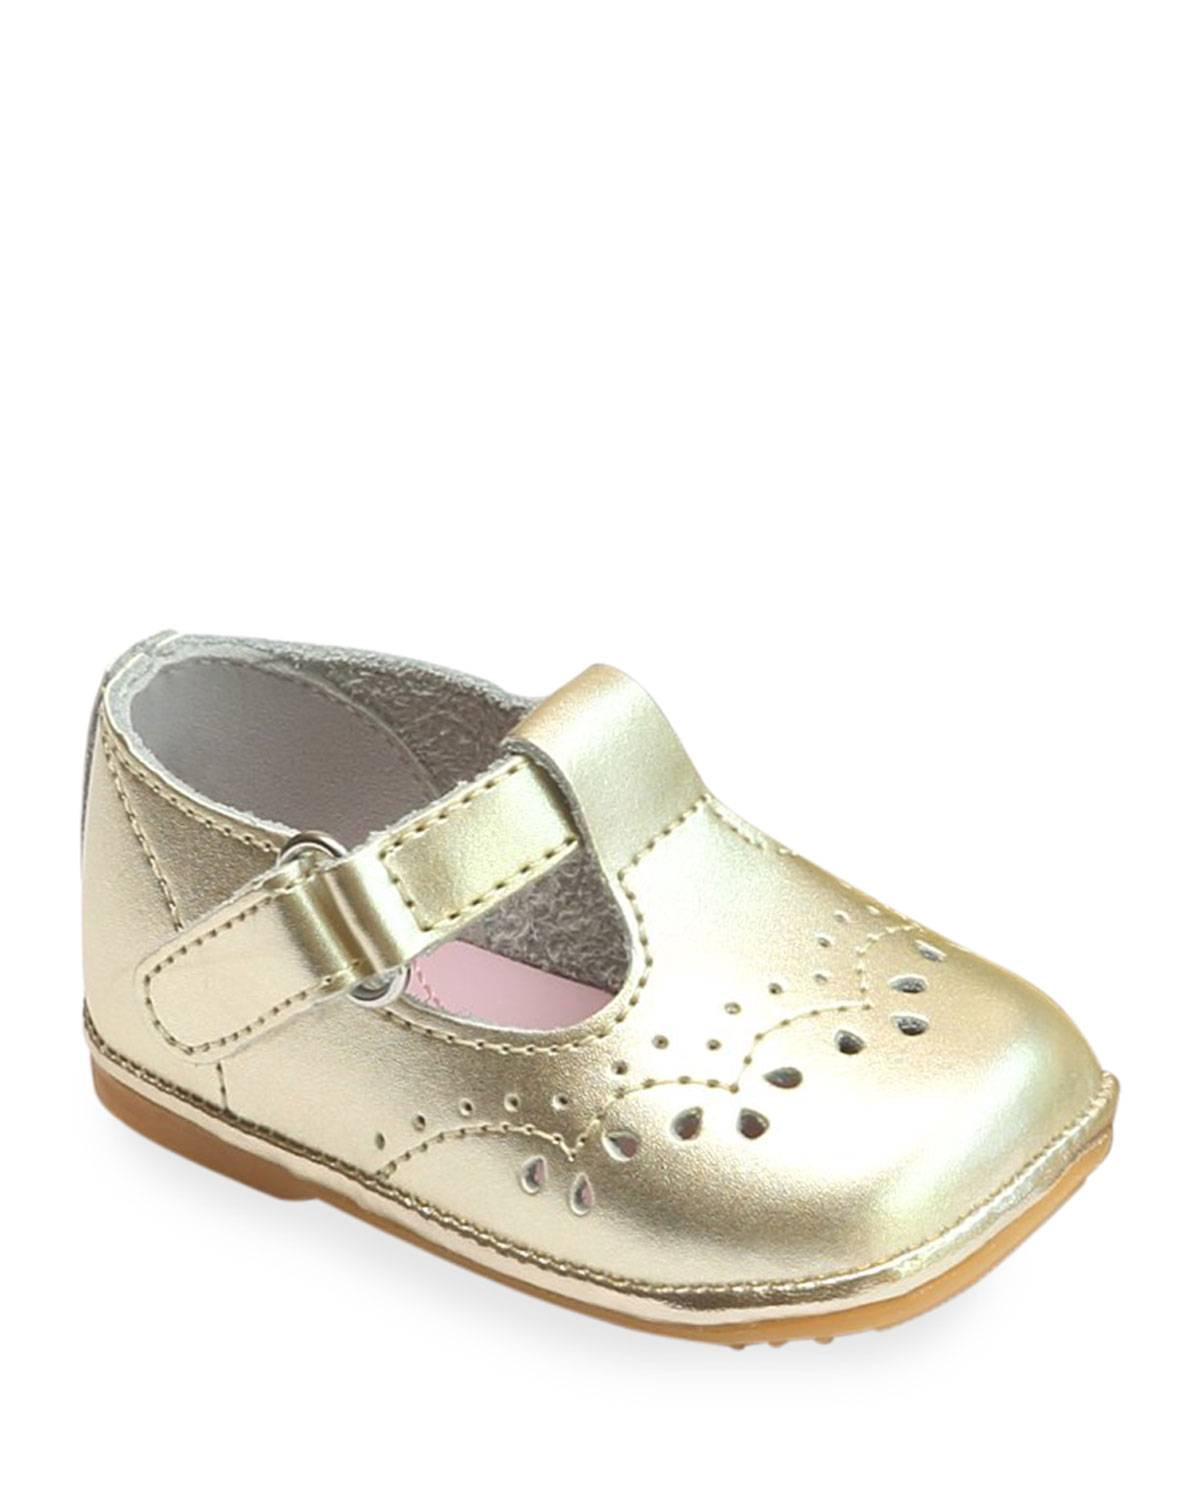 L'Amour Shoes Birdie Metallic Leather T-Strap Brogue Mary Jane, Baby  - female - YELLOW - Size: 6 Baby